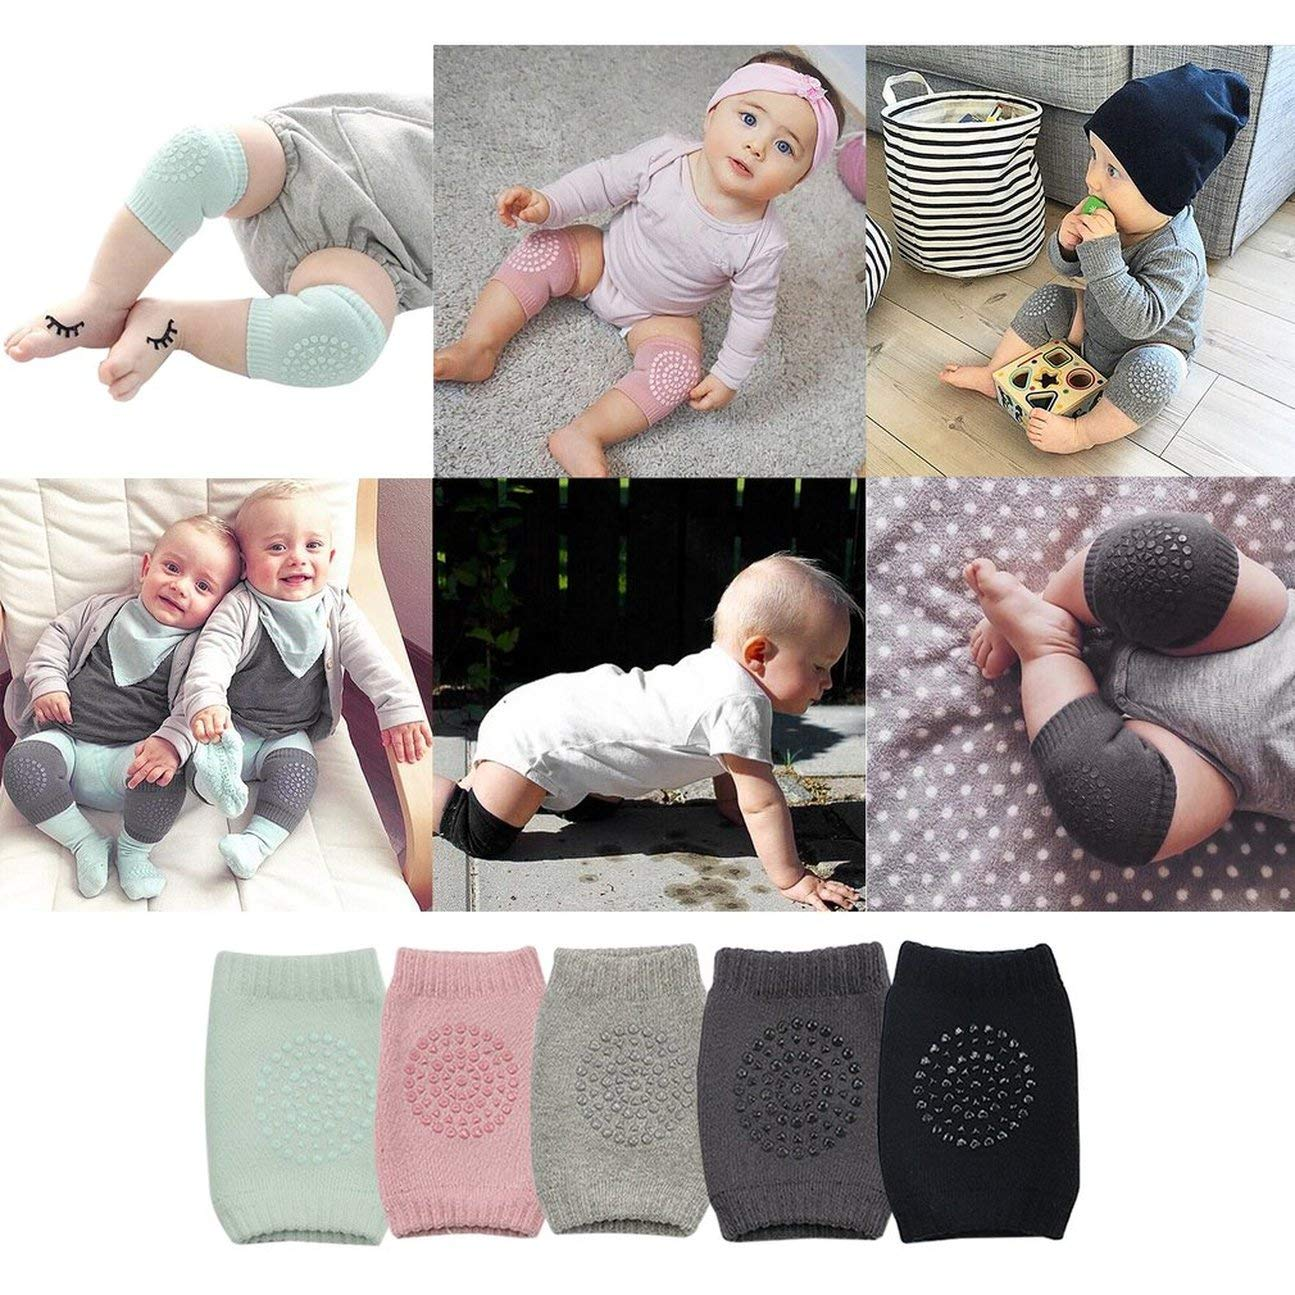 Color:Black MachinYester Comfortable Newborn Baby Knee Pad Kids Safety Breathable Crawling Elbow Knee Protective Pad Warmers for Infant Toddlers